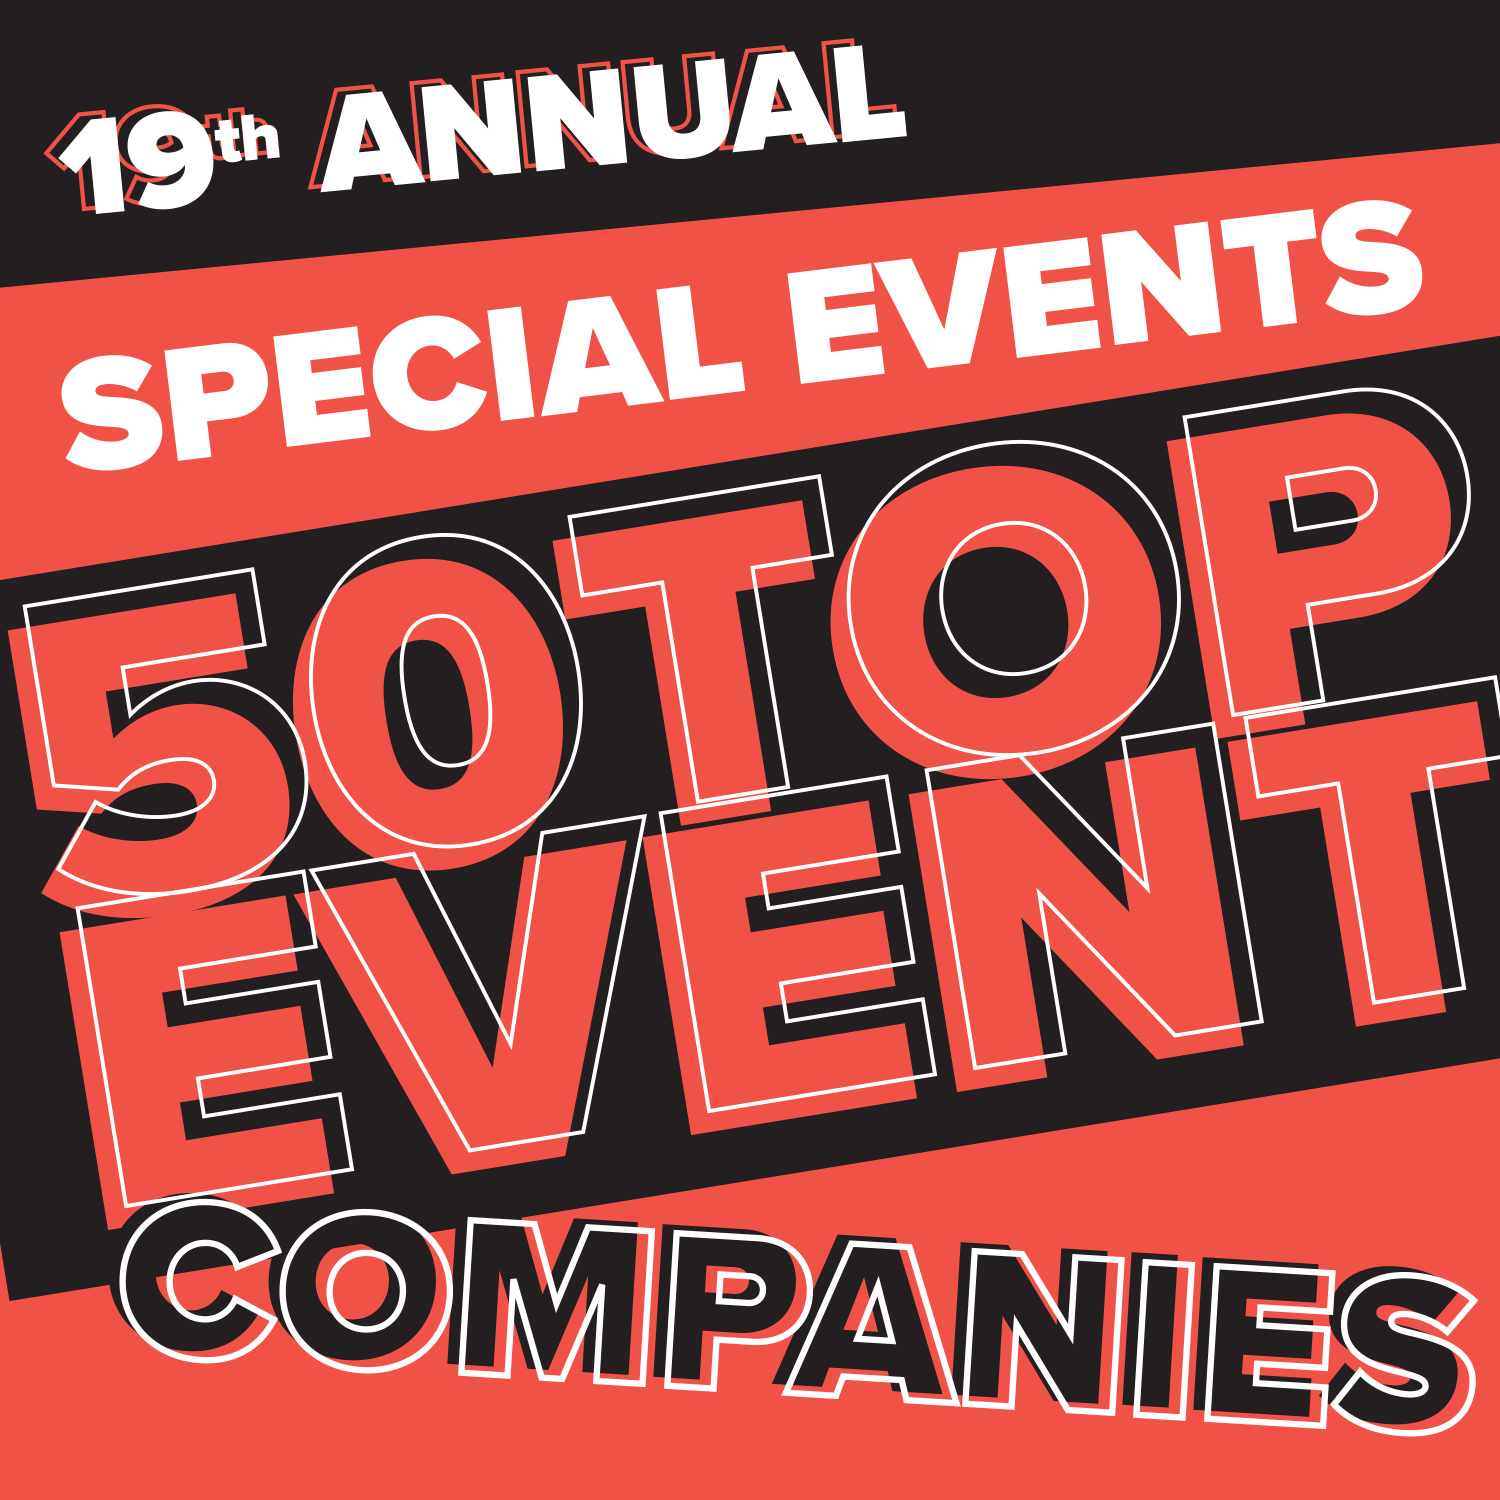 Top Event Companies